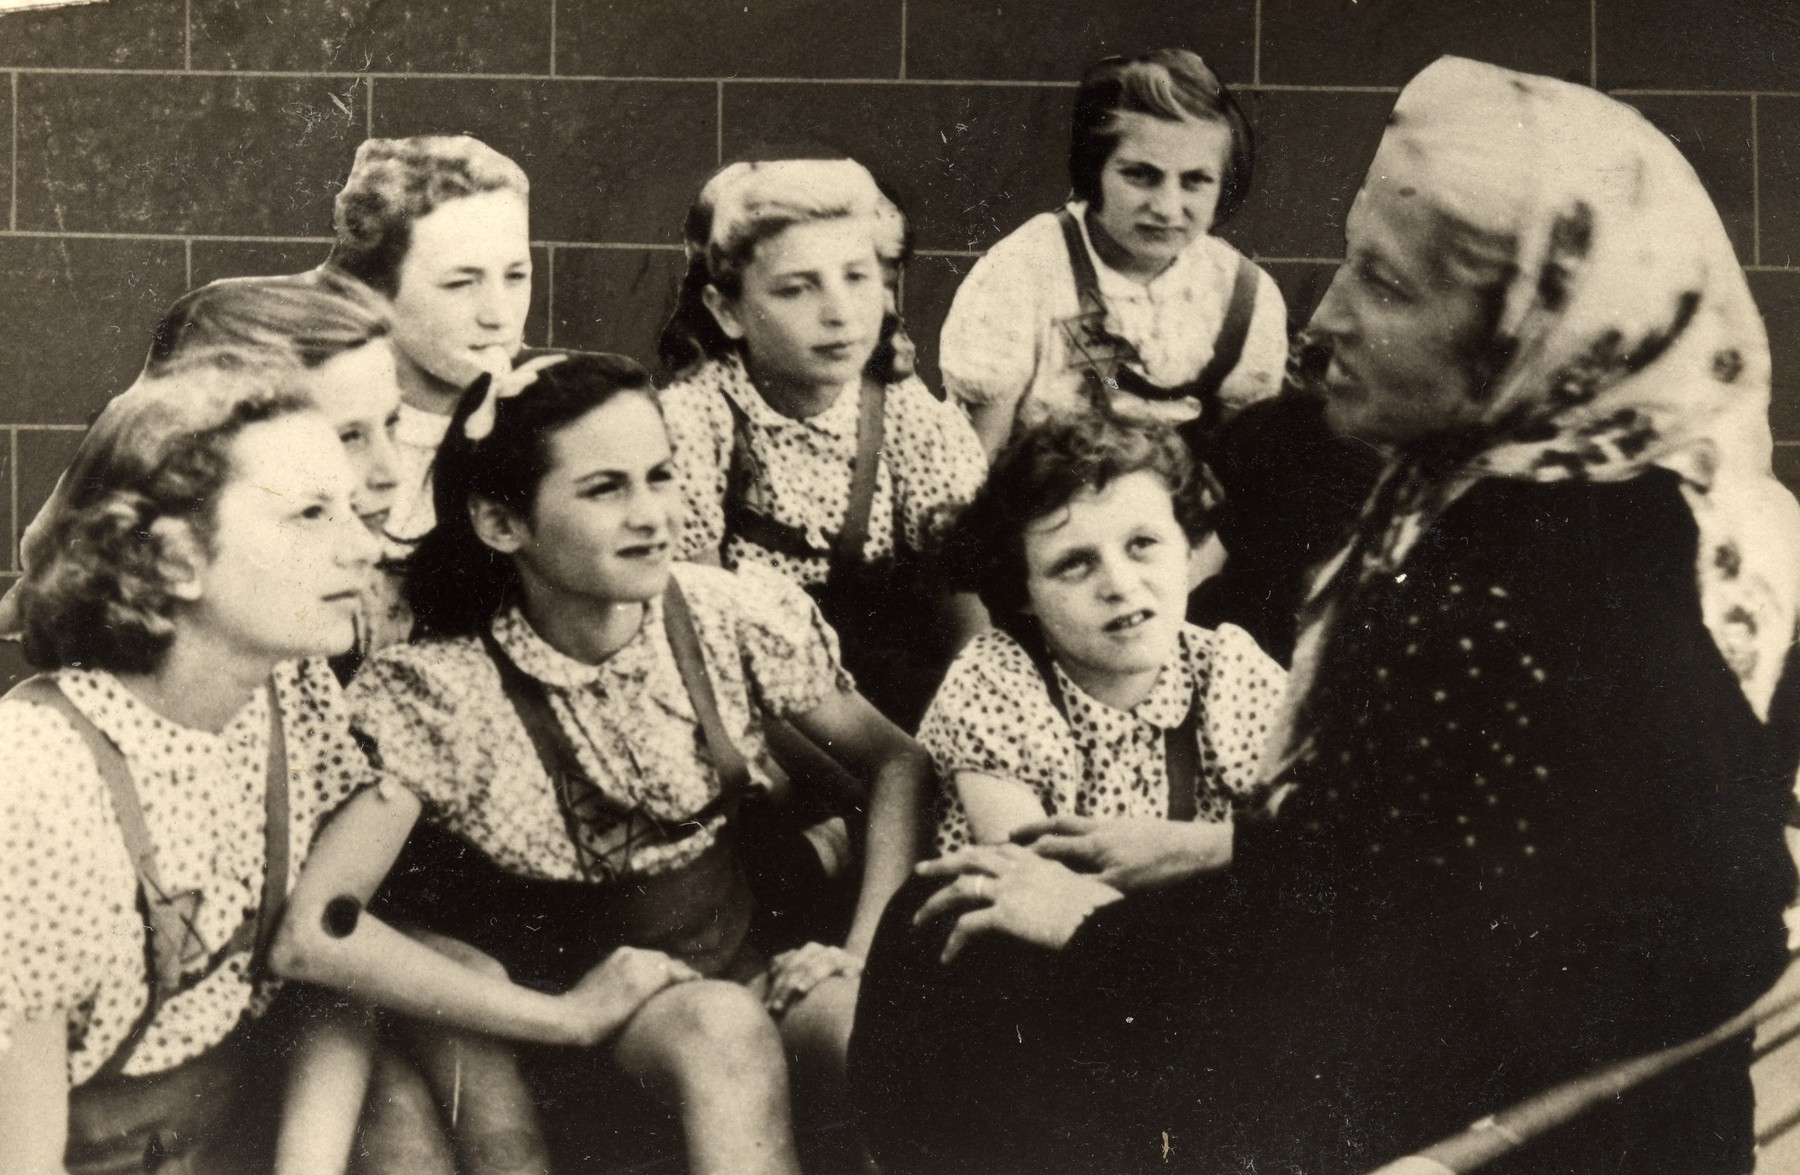 Stella Rein, the headmaster of the Lodz ghetto's high-school, talks to a group of young girls wearing similar blouses.   Pictured in the front row, right, is Felicia (Faiga) Ferszter, daughter of Leon (Leib) Ferszter and his first wife Zelda (nee Asz) Ferszter.  Felicia was born in February 1931 in Lodz and died with her mother in Auschwitz in August 1944.